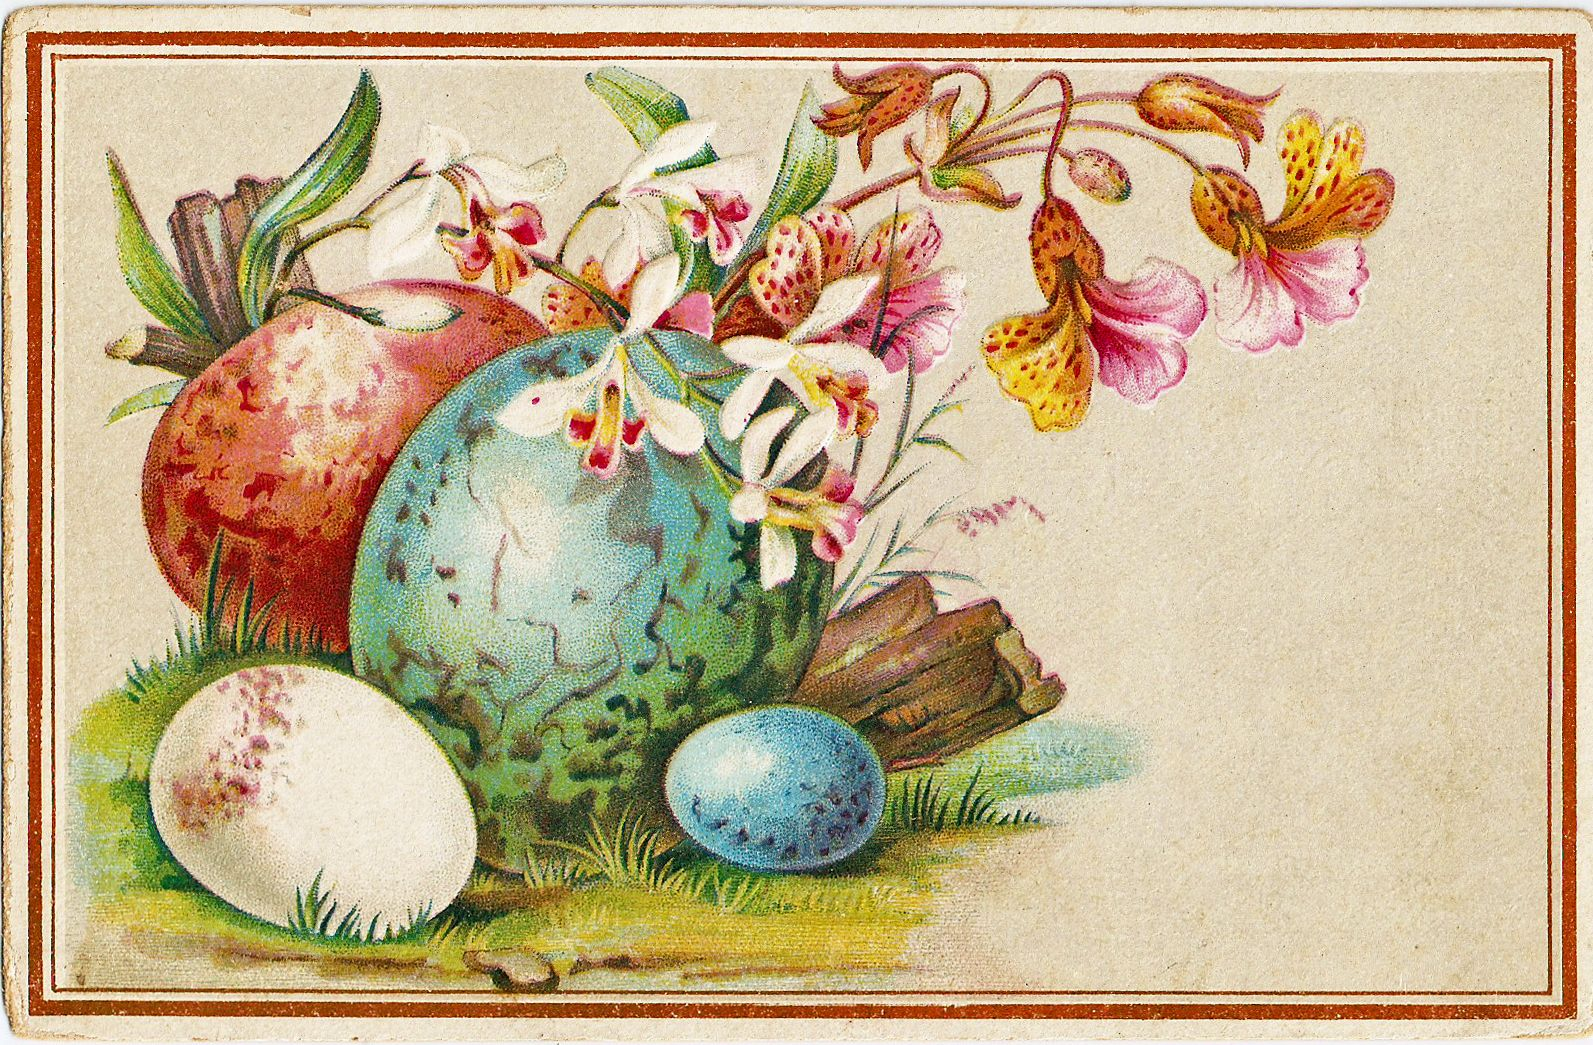 Free vintage easter clipart images royalty free CatnipStudioCollage-: Free Vintage Clip Art - Easter Eggs Trade Card ... royalty free